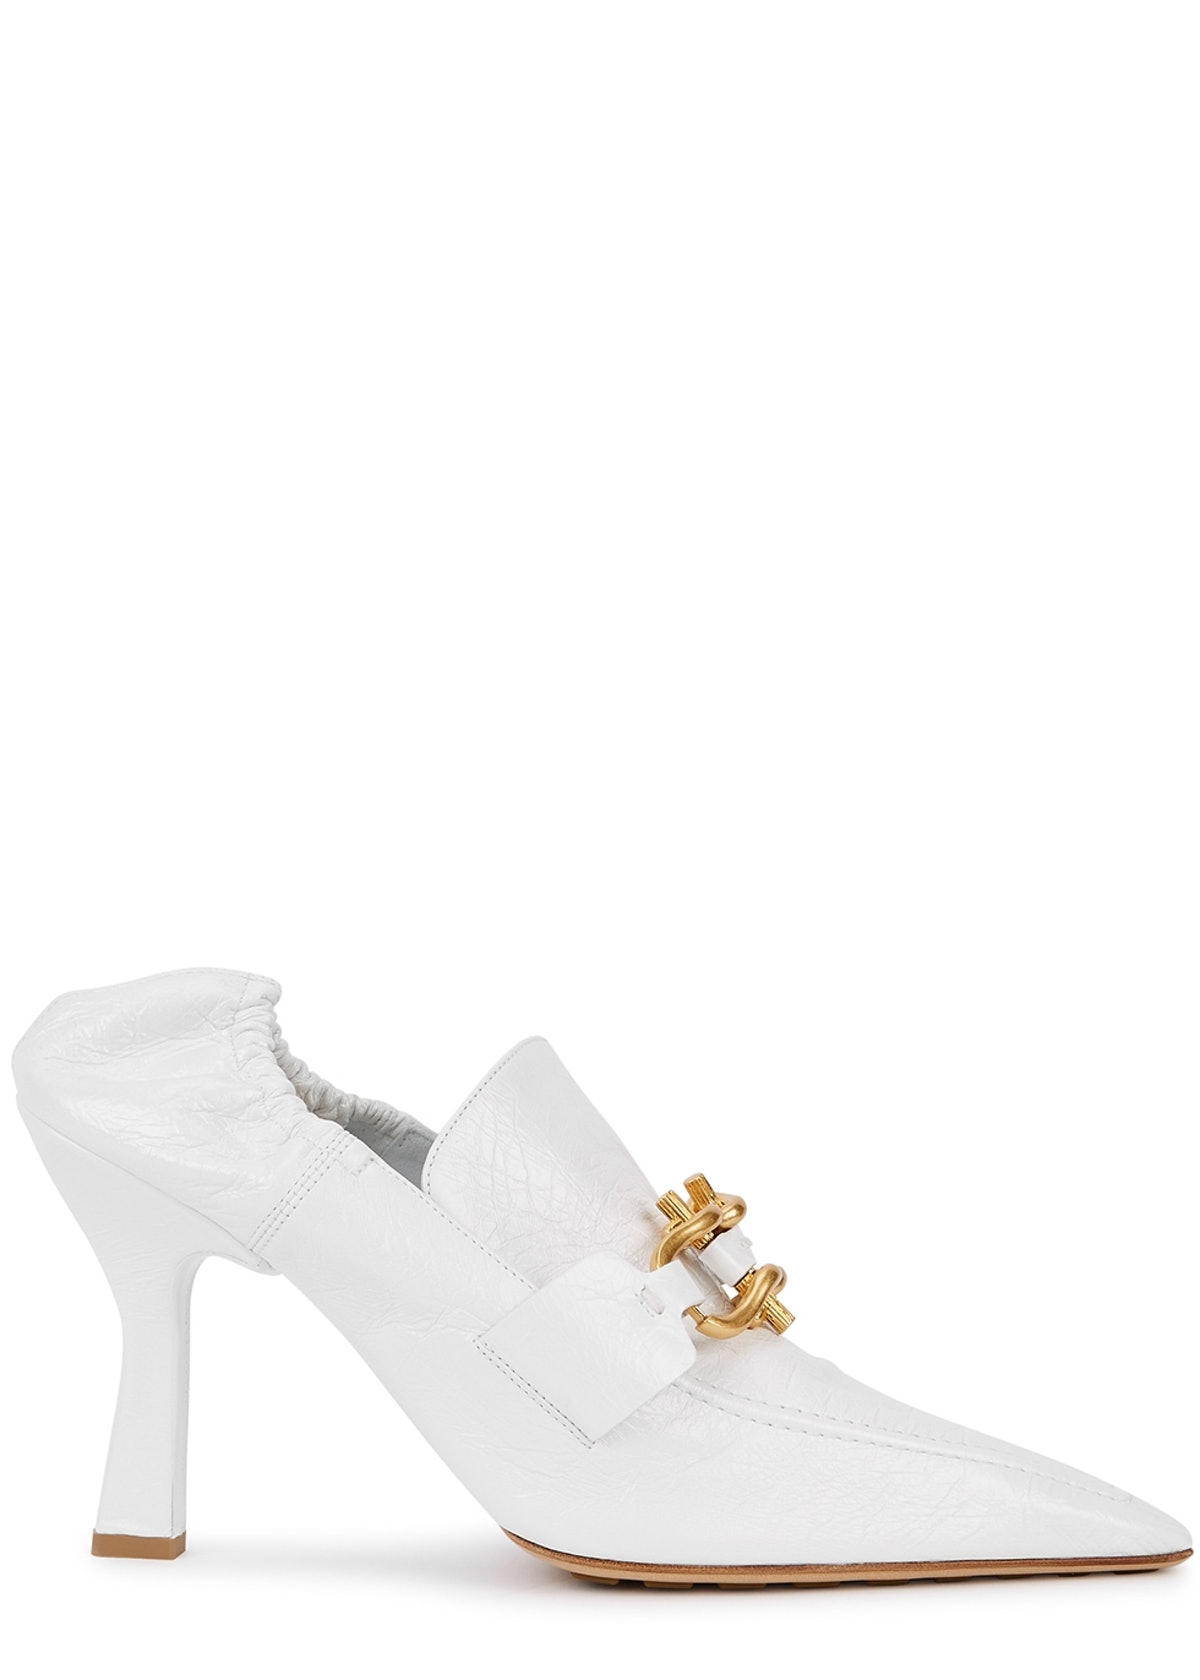 The Madame 90 white leather pumps: image 1